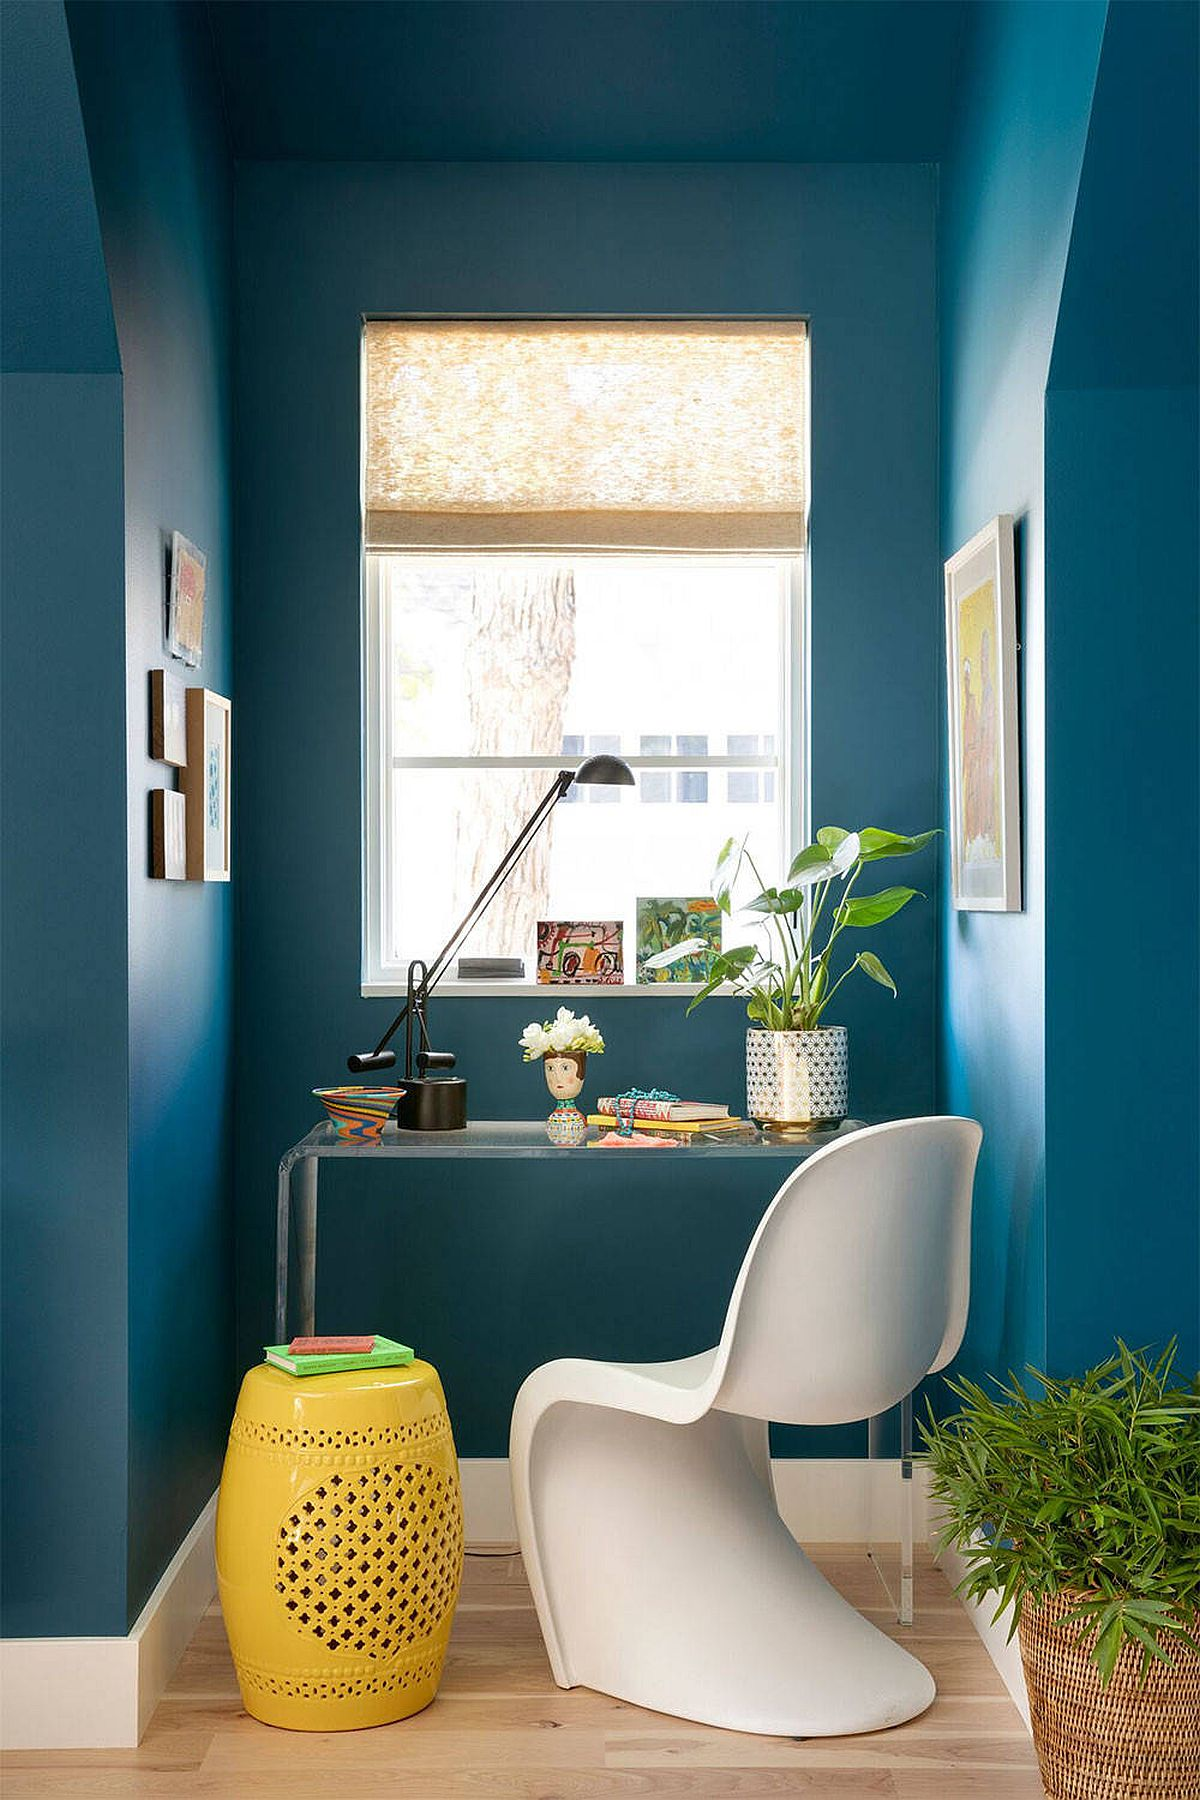 Exquisite blue home office with modern eclectic style and just a dash of yellow